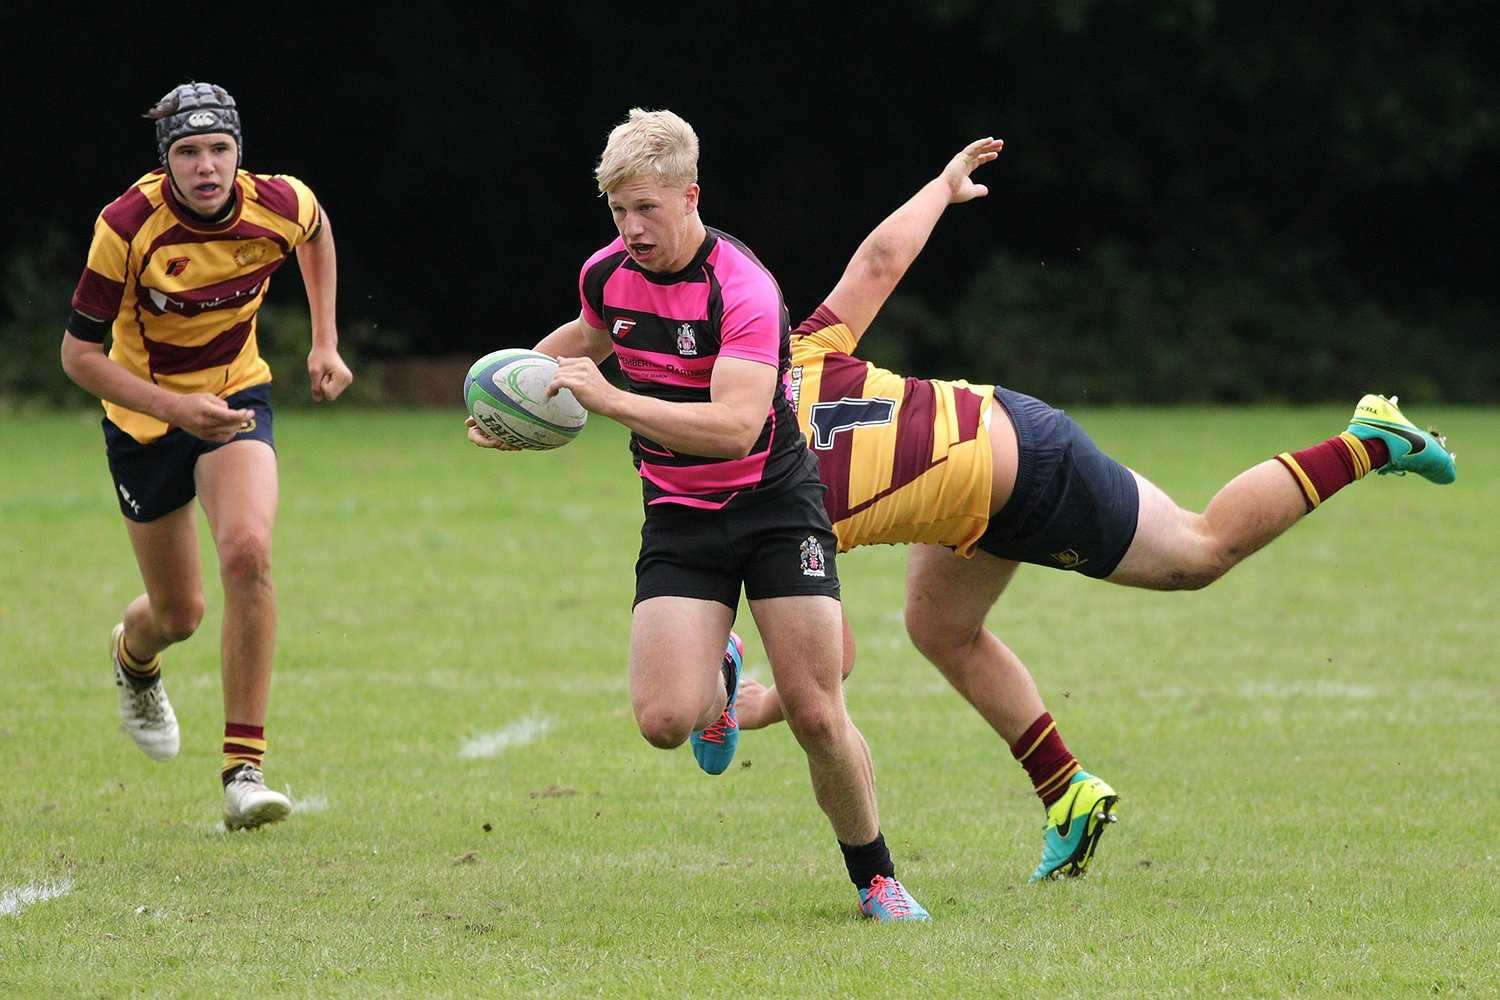 Tyler Tomlinson - Rugby Player